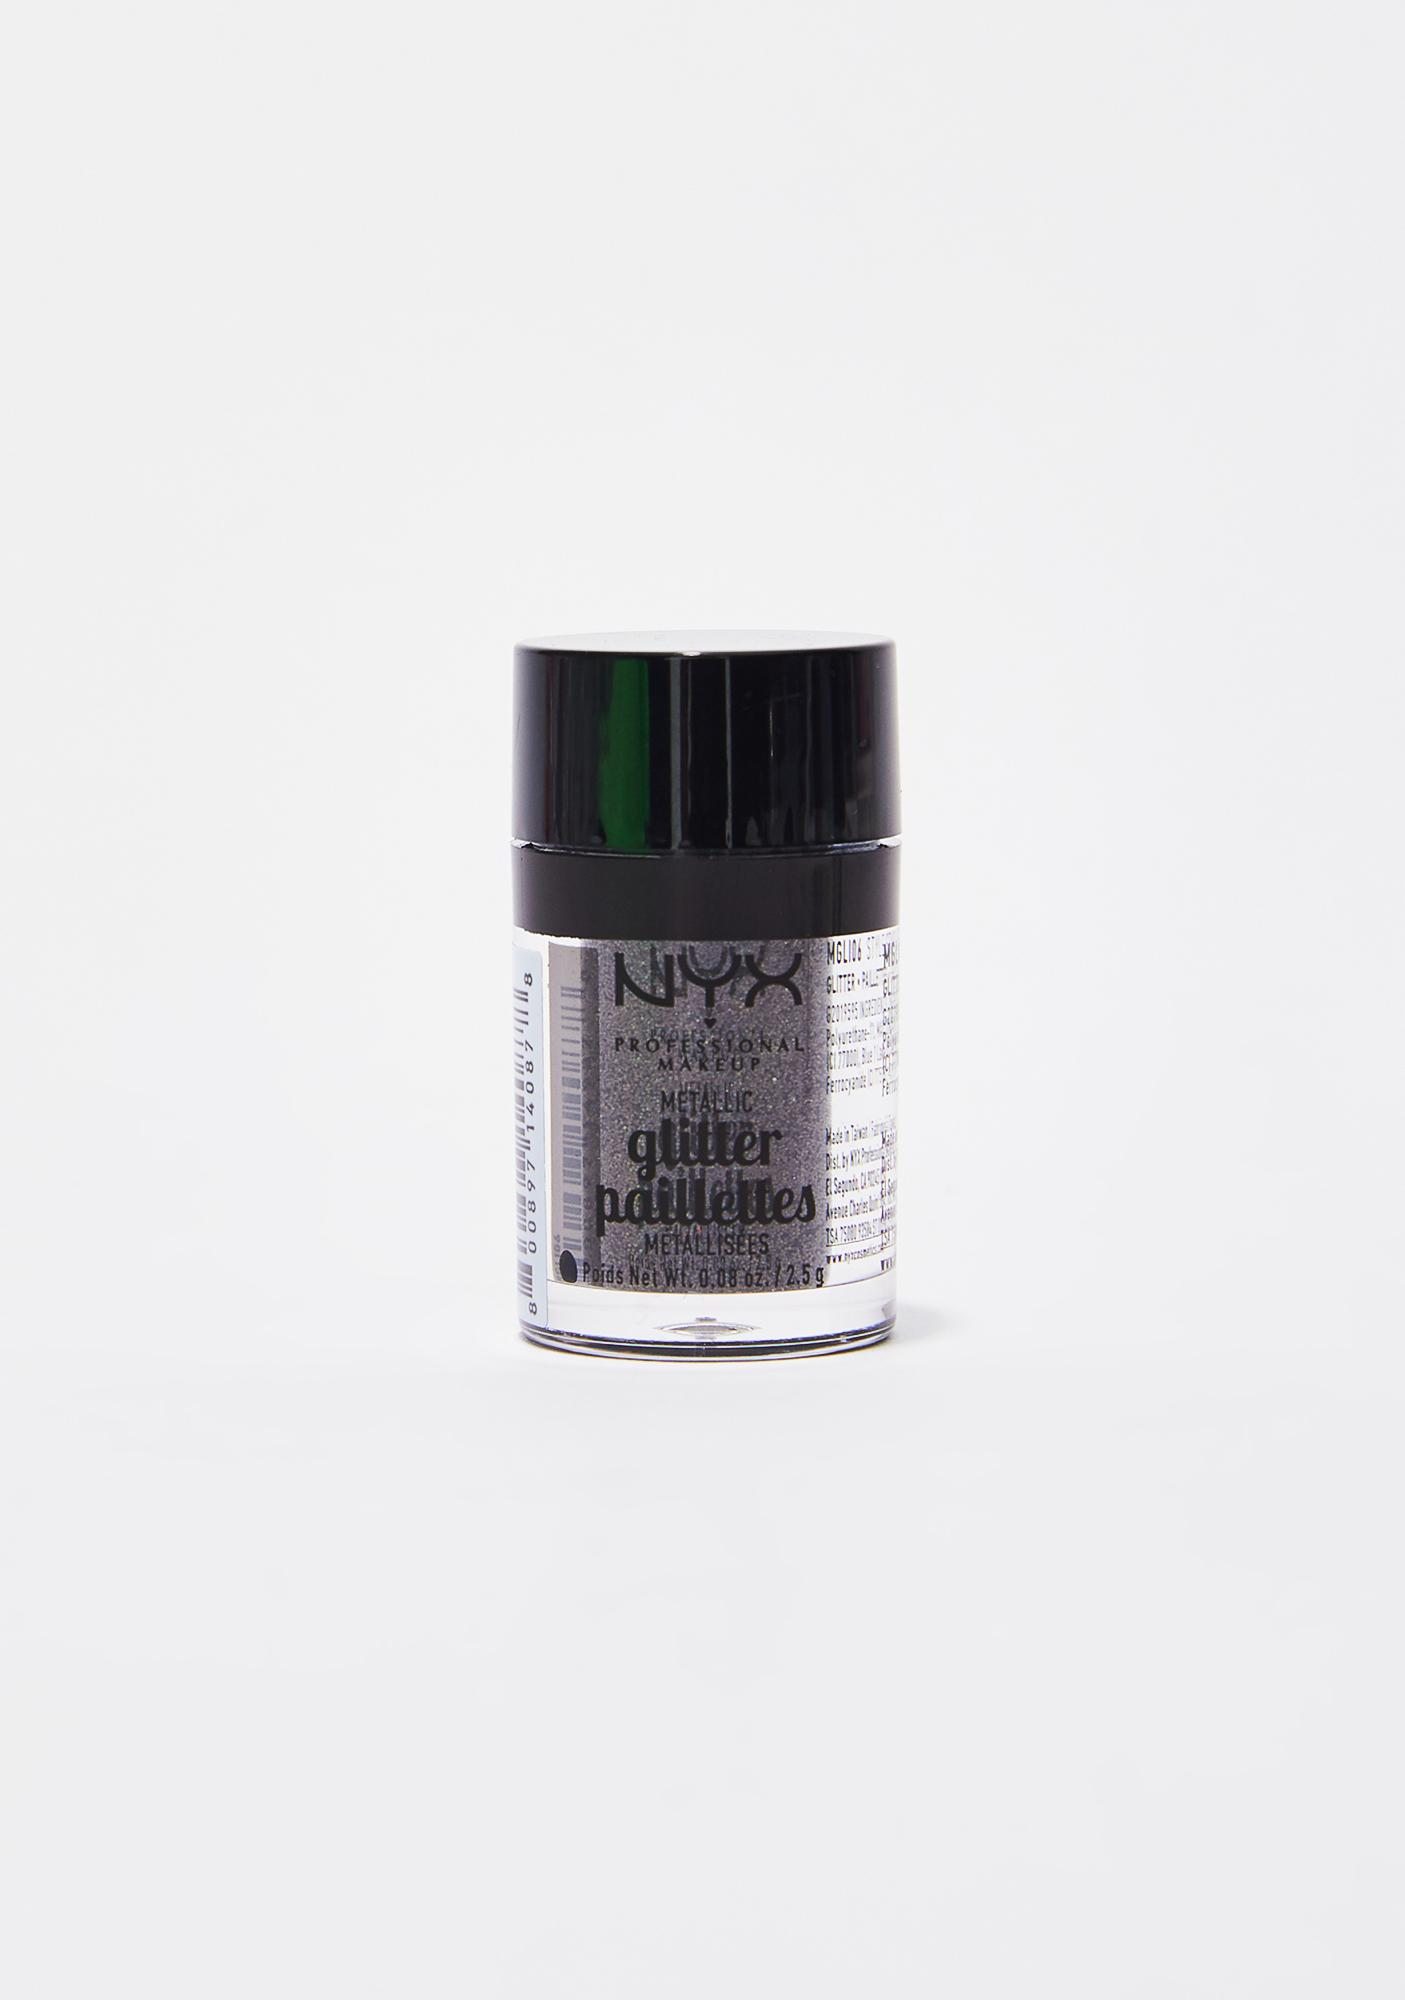 Style Star Metallic Glitter by Nyx